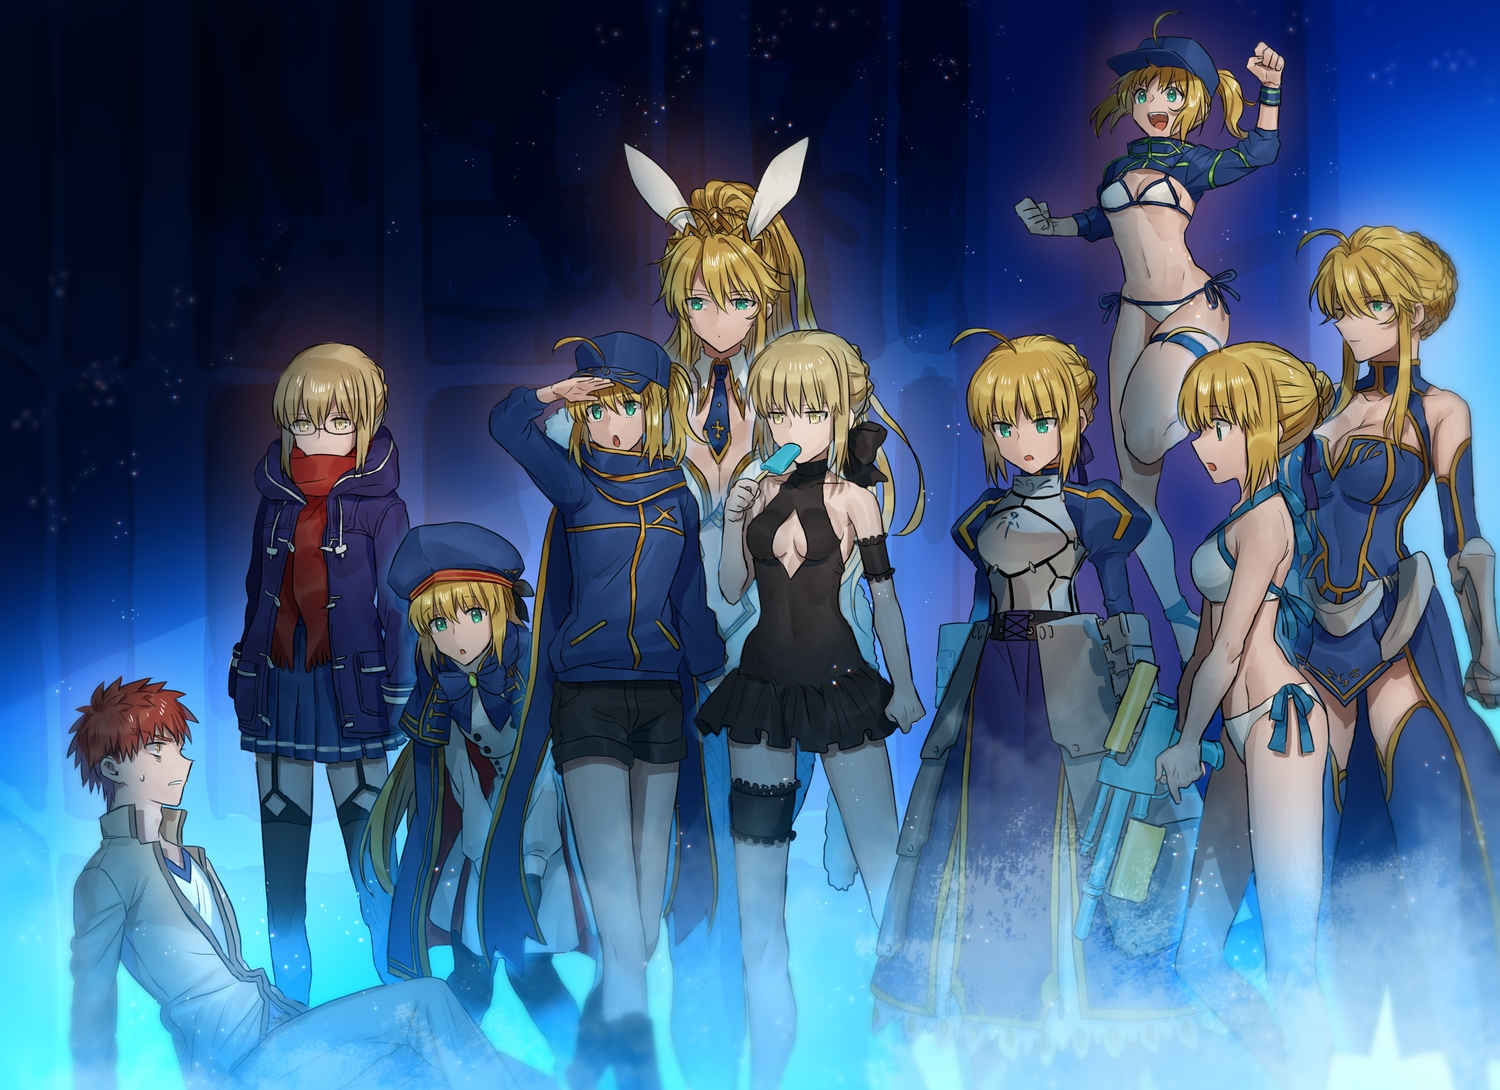 animal_ears aqua_eyes artoria_pendragon_(all) artoria_pendragon_(caster) artoria_pendragon_(lancer) blonde_hair breasts bunnygirl cleavage dress emiya_shirou fate/grand_order fate_(series) fate/stay_night glasses green_eyes group hat male mysterious_heroine_x mysterious_heroine_x_alter mysterious_heroine_xx_(foreigner) navel none_(kameko227) ponytail popsicle red_hair saber saber_alter scarf shirt_lift short_hair shorts skirt stockings thighhighs yellow_eyes zettai_ryouiki